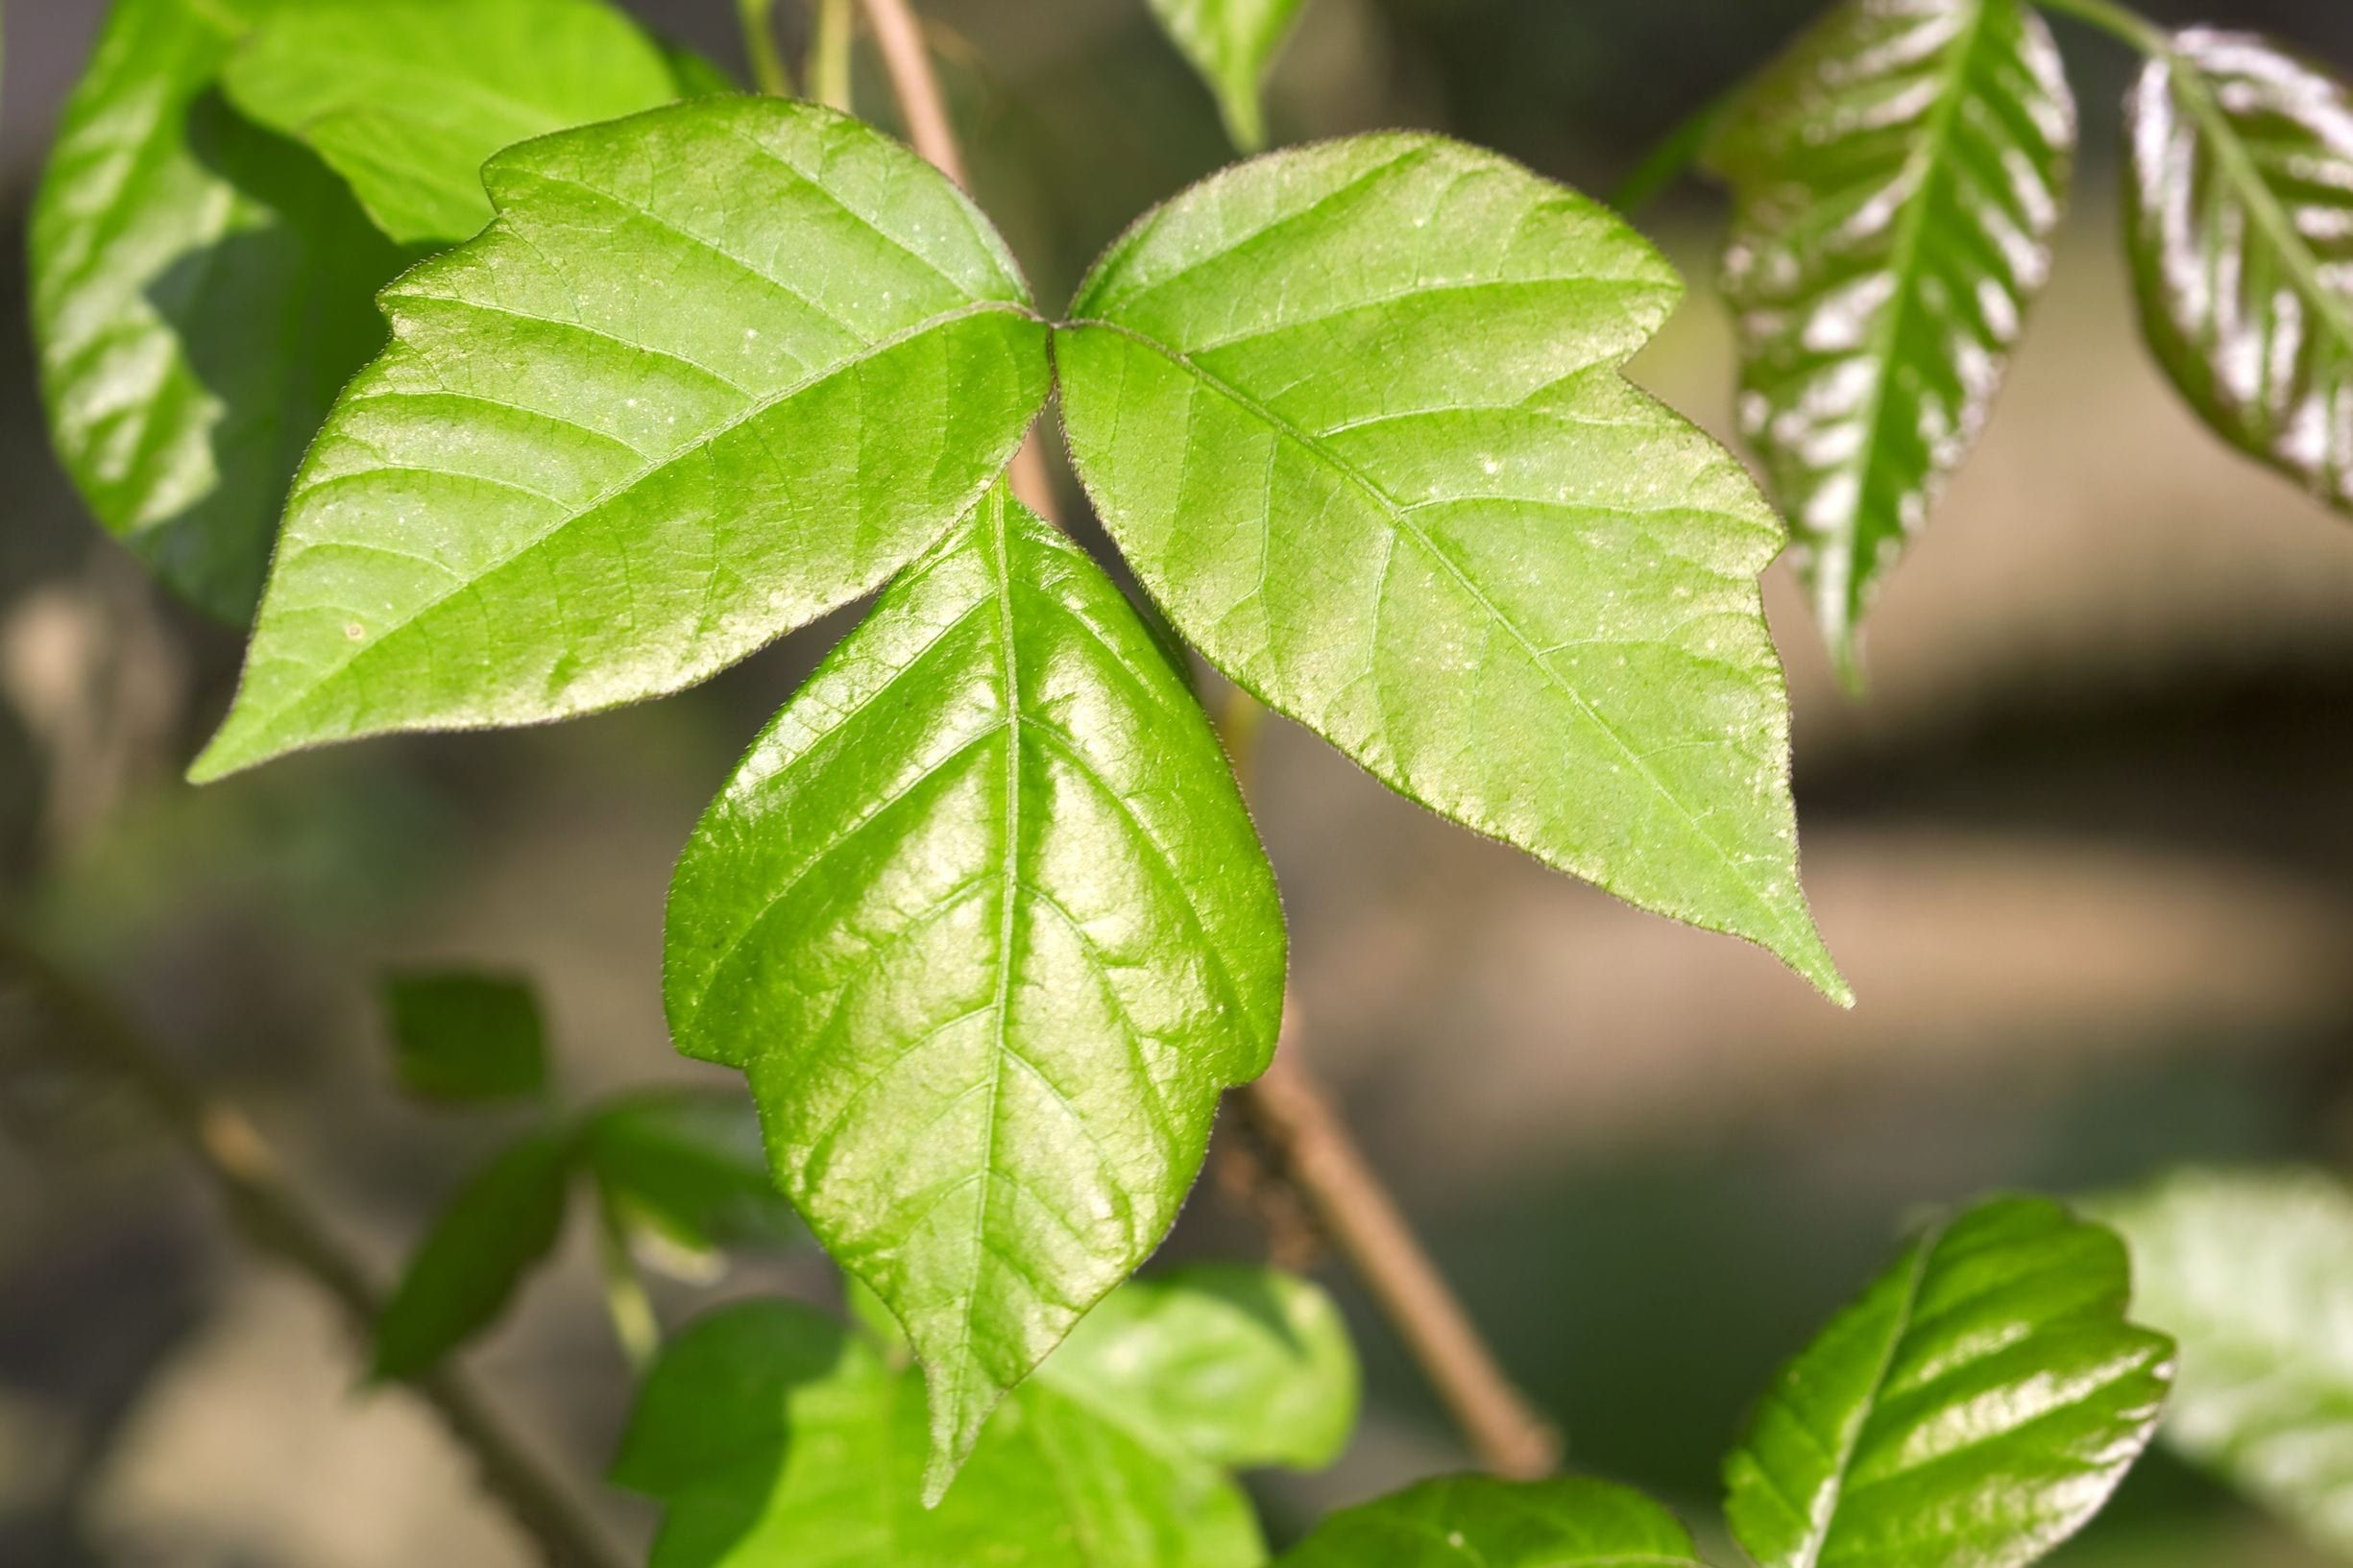 Doggy Danger: Poison Ivy on Dogs